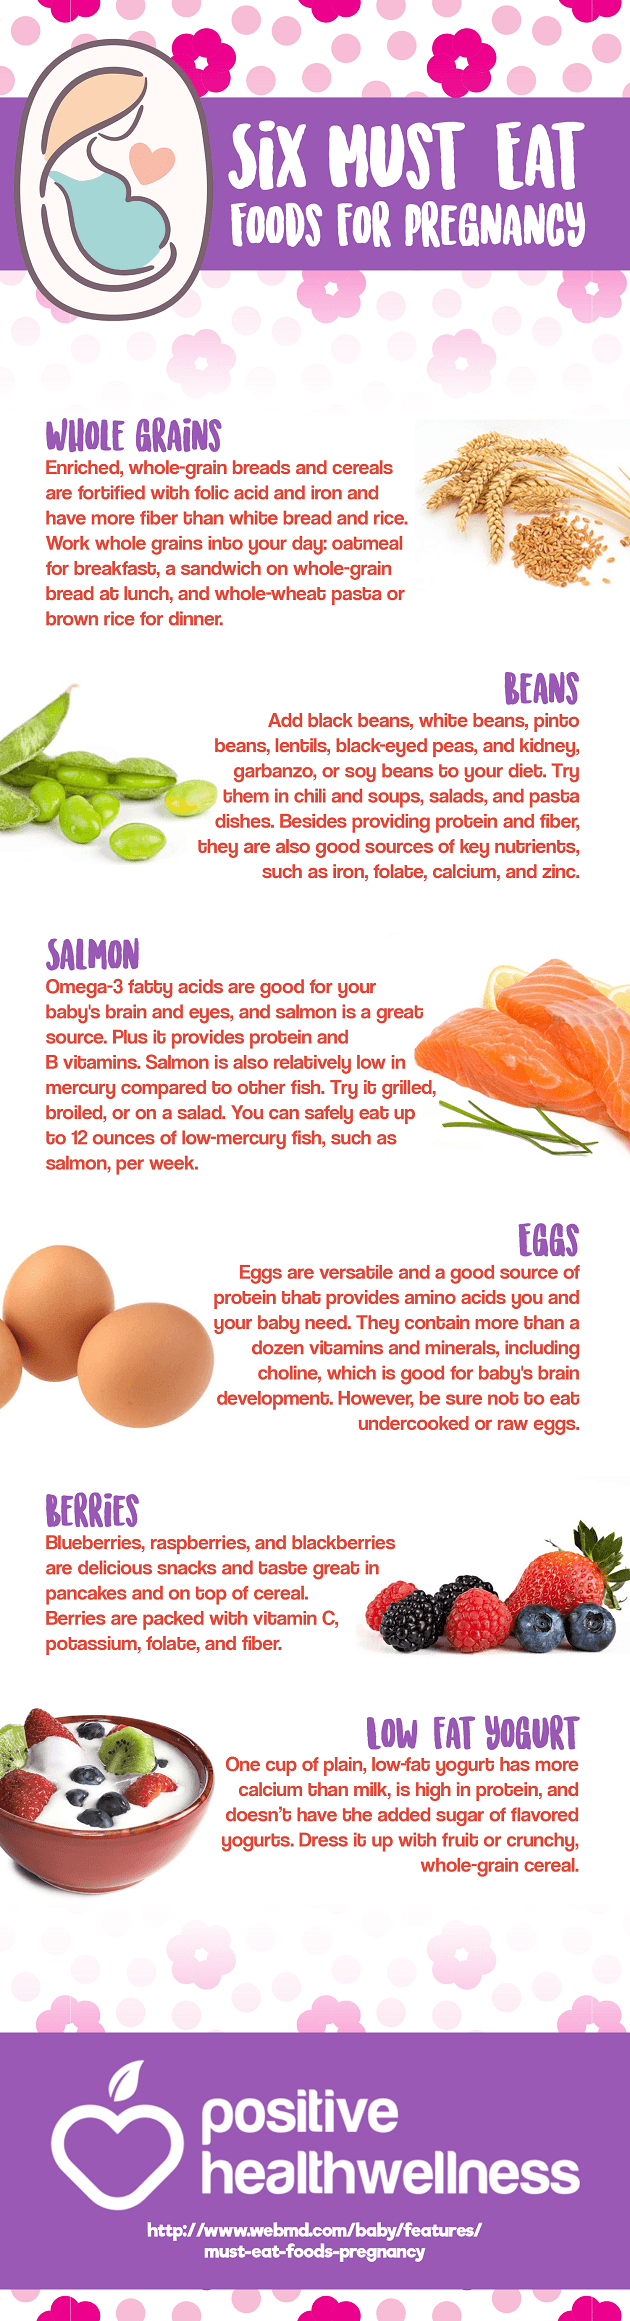 6 Must-Eat Foods for Pregnancy